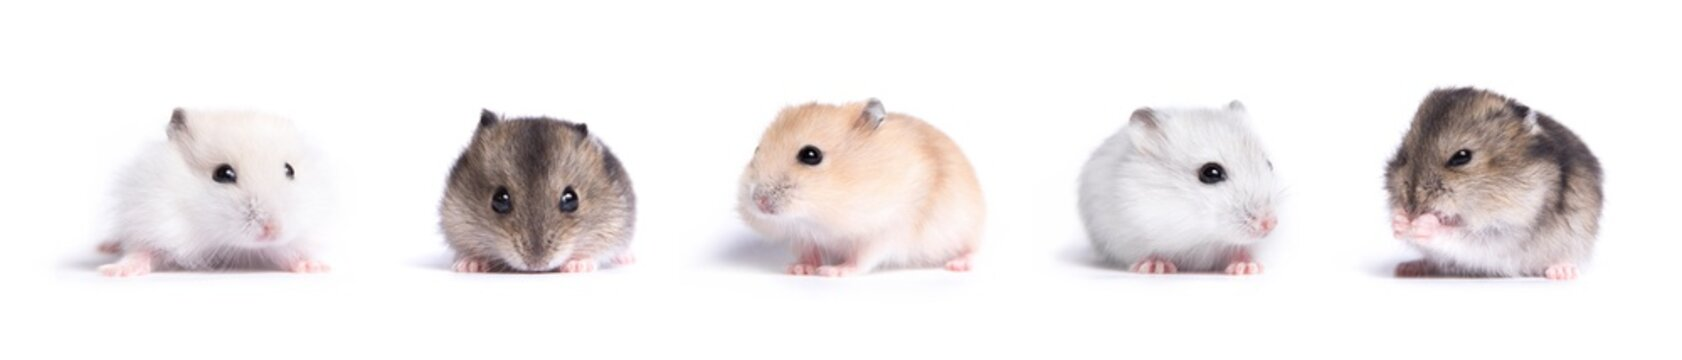 collection of Jungar hamster on a white background